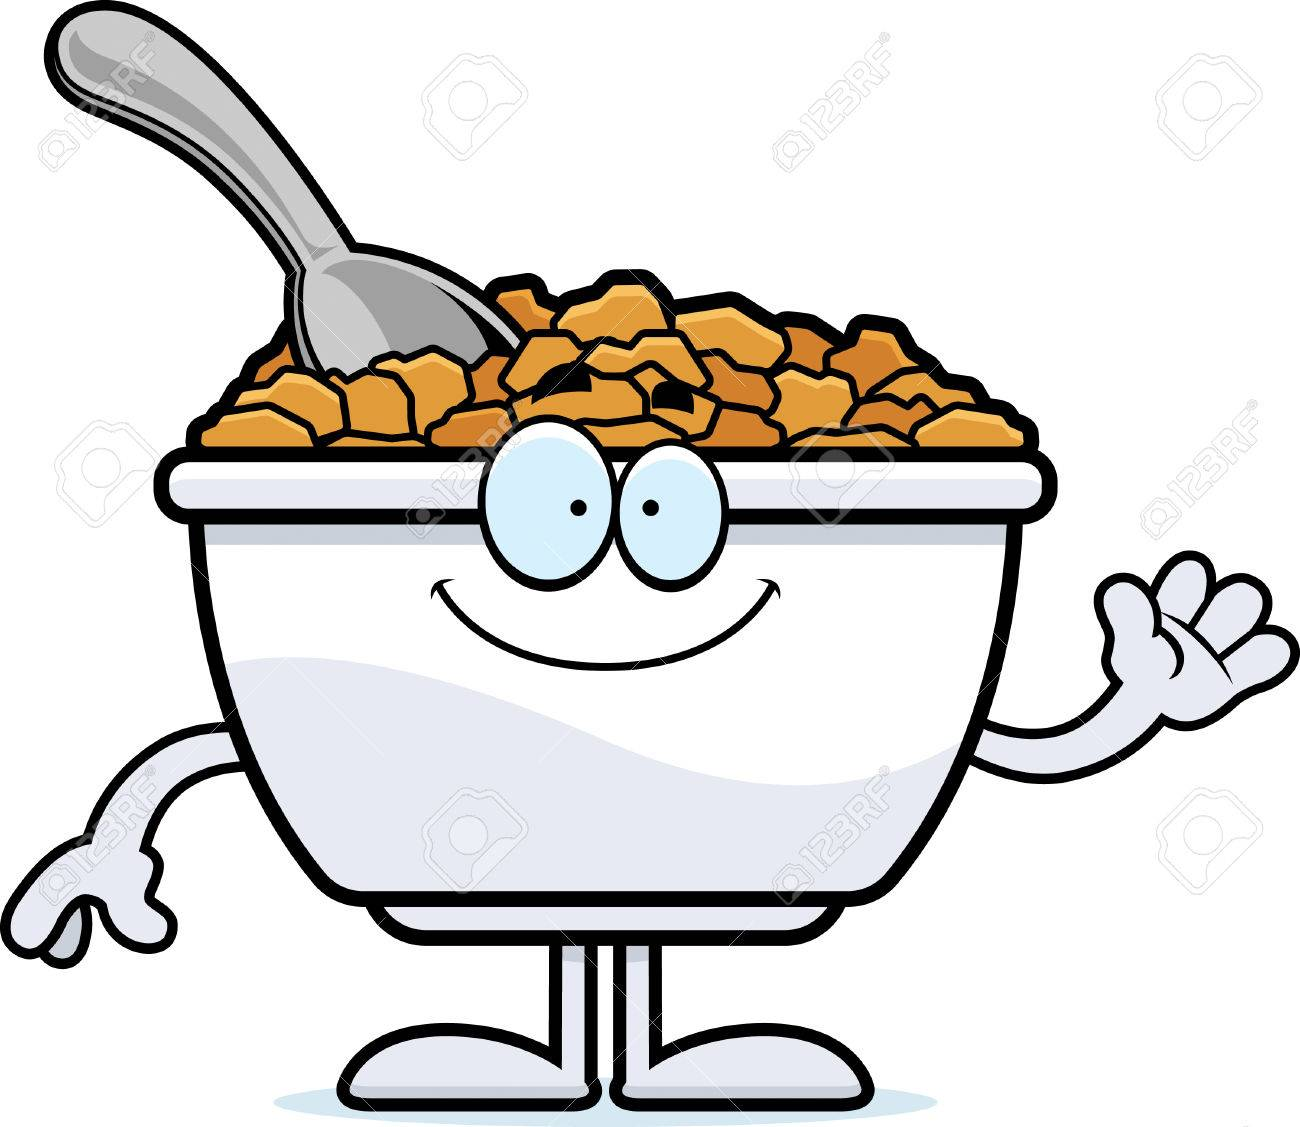 hight resolution of a cartoon illustration of a bowl of cereal waving stock vector 55004705